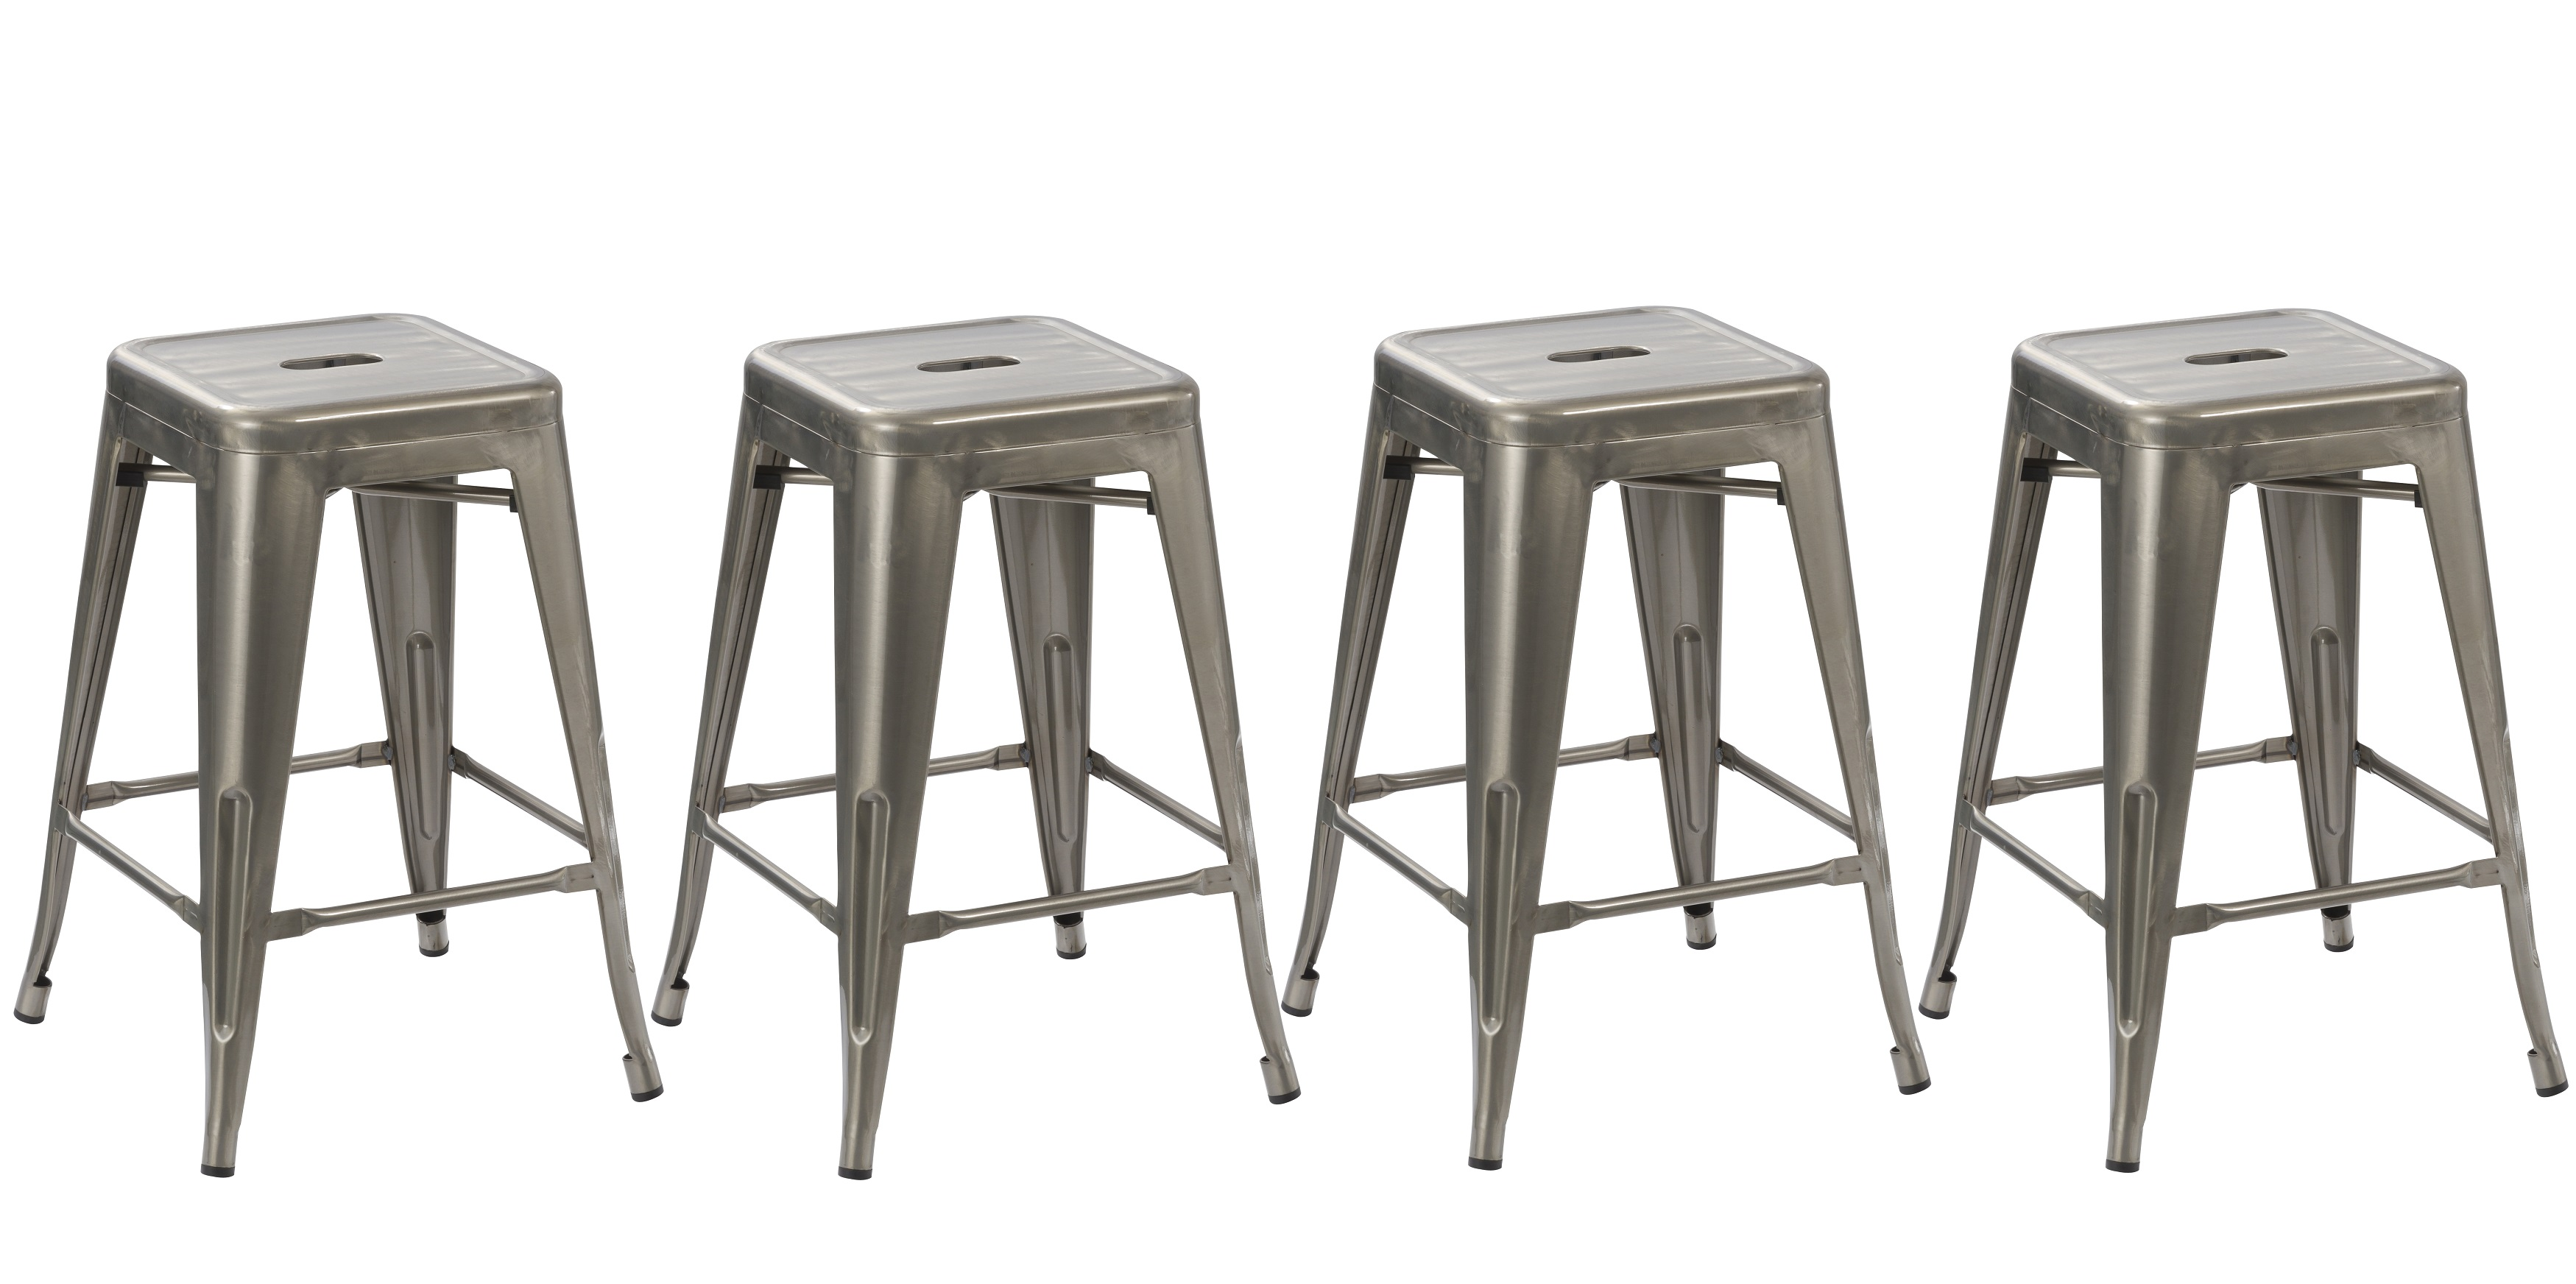 BTEXPERT® 24 Inch Industrial Vintage Antique Style Distressed Metal Brush  Modern Dining Counter Bar Stool   (Set Of 4 Barstool)   Walmart.com